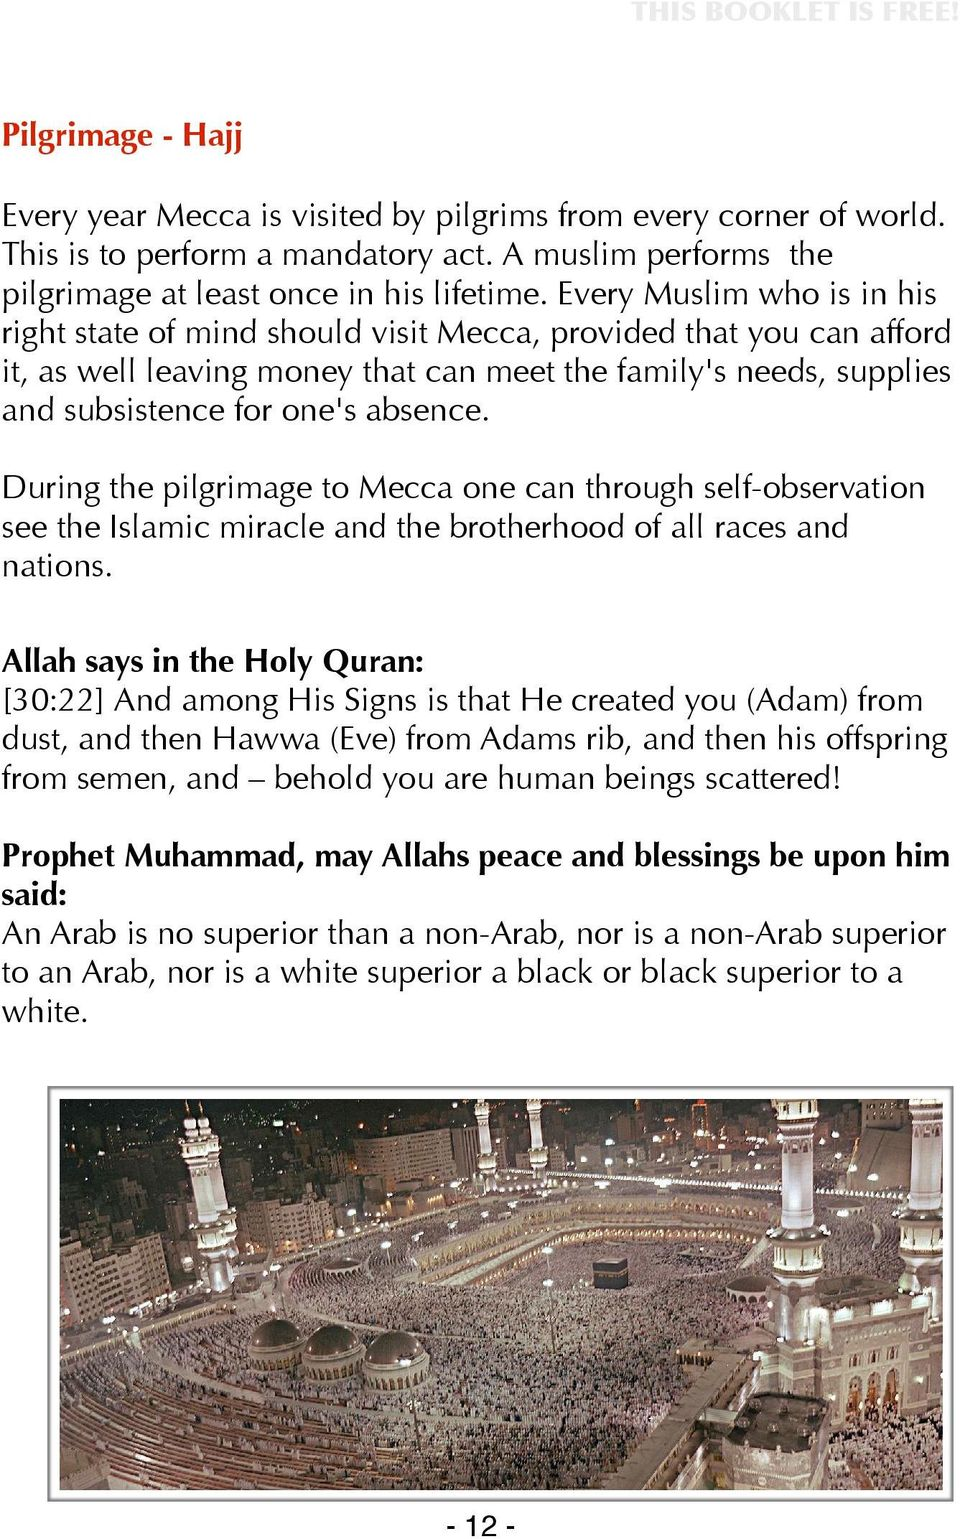 During the pilgrimage to Mecca one can through self-observation see the Islamic miracle and the brotherhood of all races and nations.